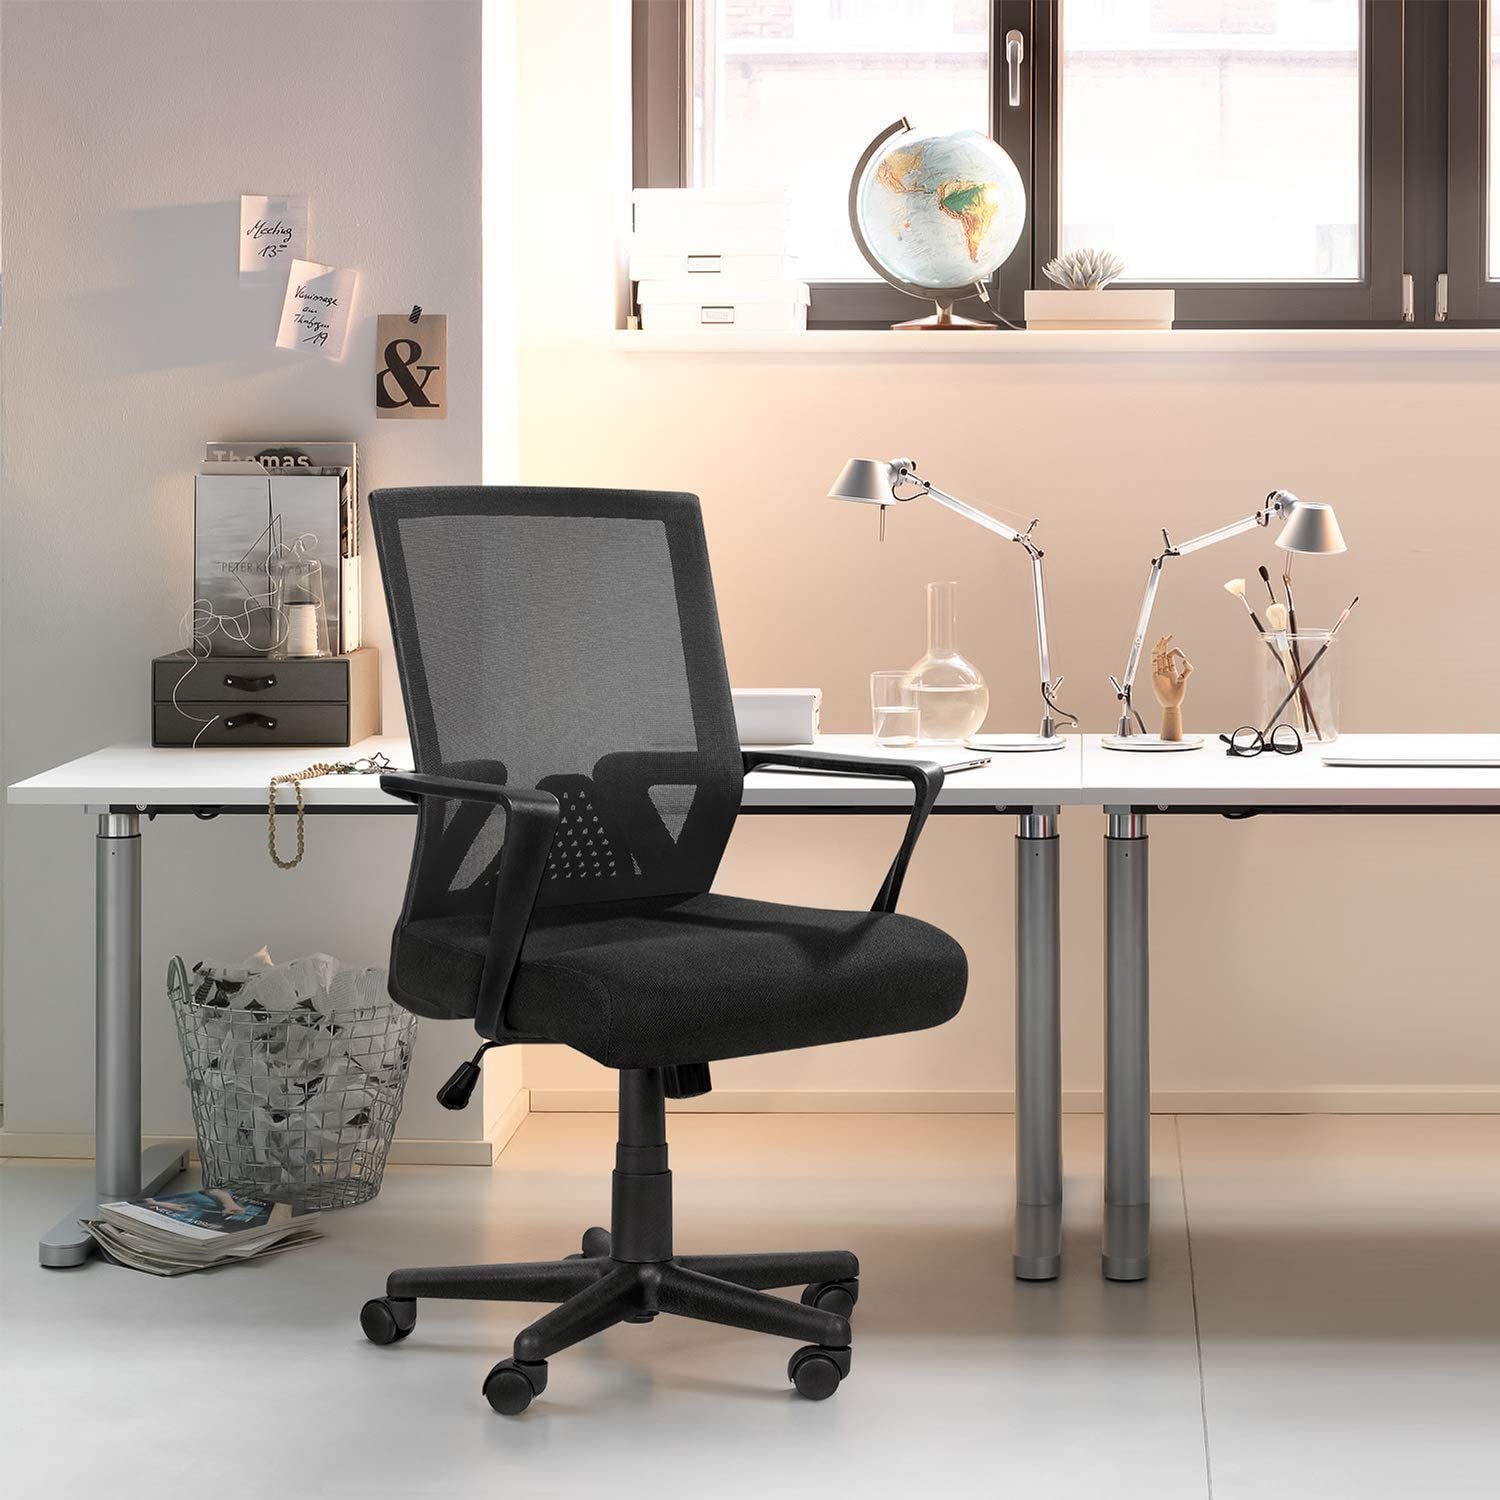 Office Chair Ergonomic Lumbar Support Desk Mesh Computer Chair Mid Back Swivel Chair With Armrest Office Products Office Furniture Accessories